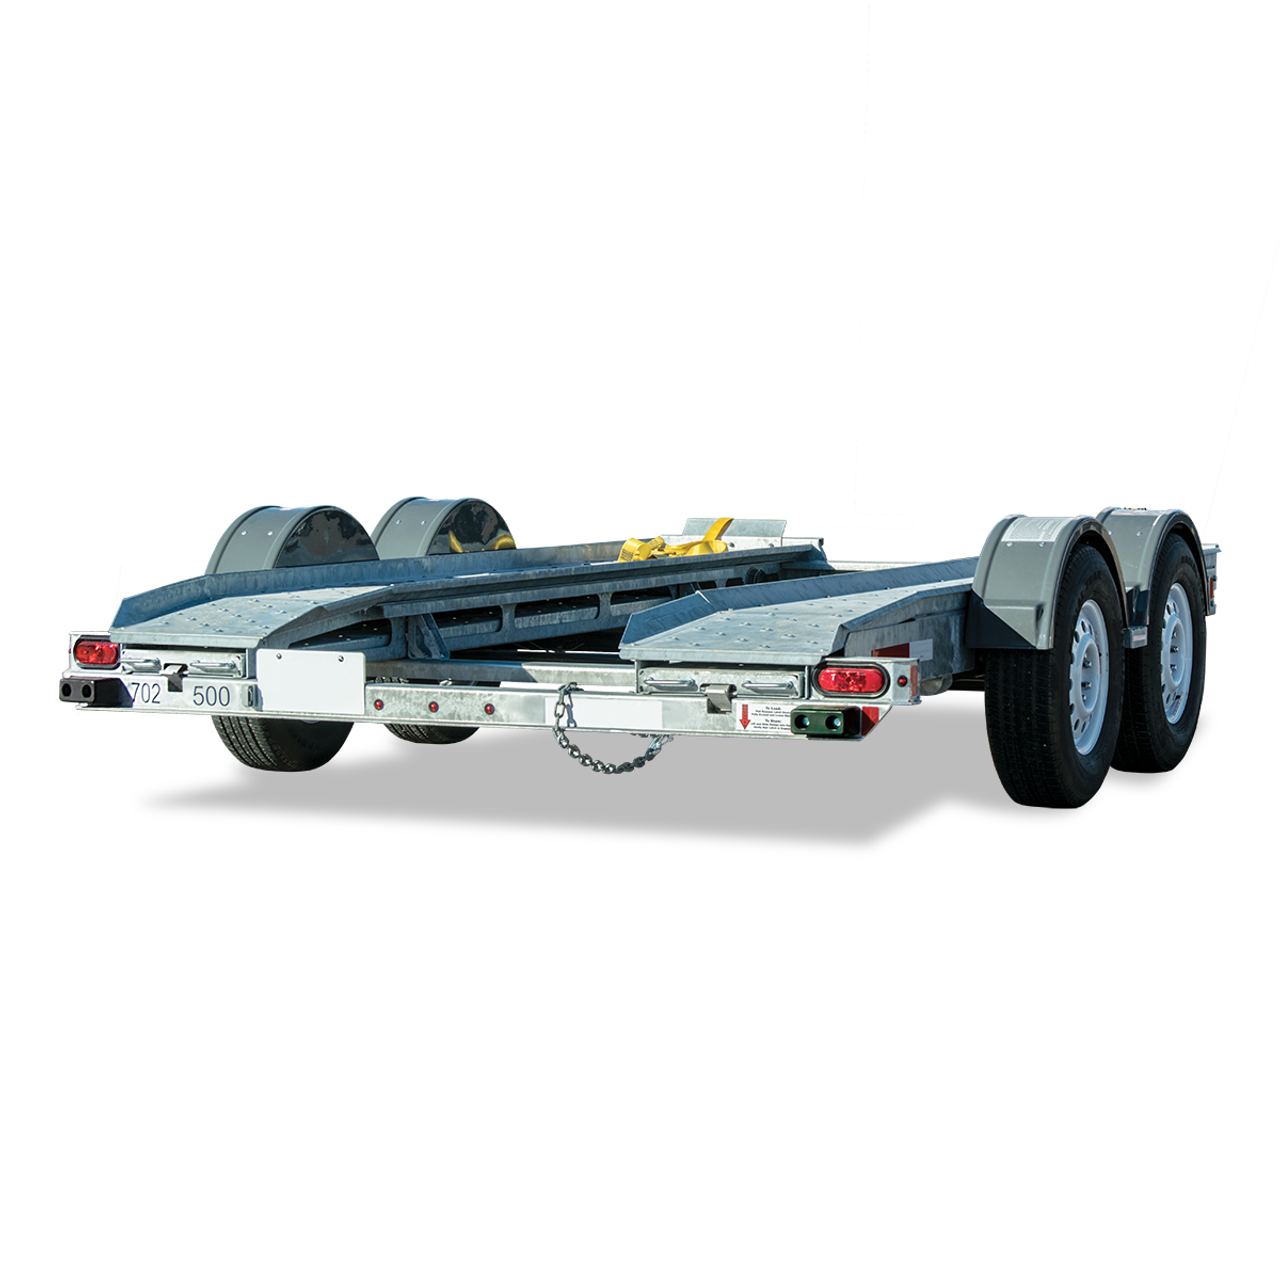 AT7000C --- CROFT Torsion Axle Auto Transport with Surge Disc Brakes